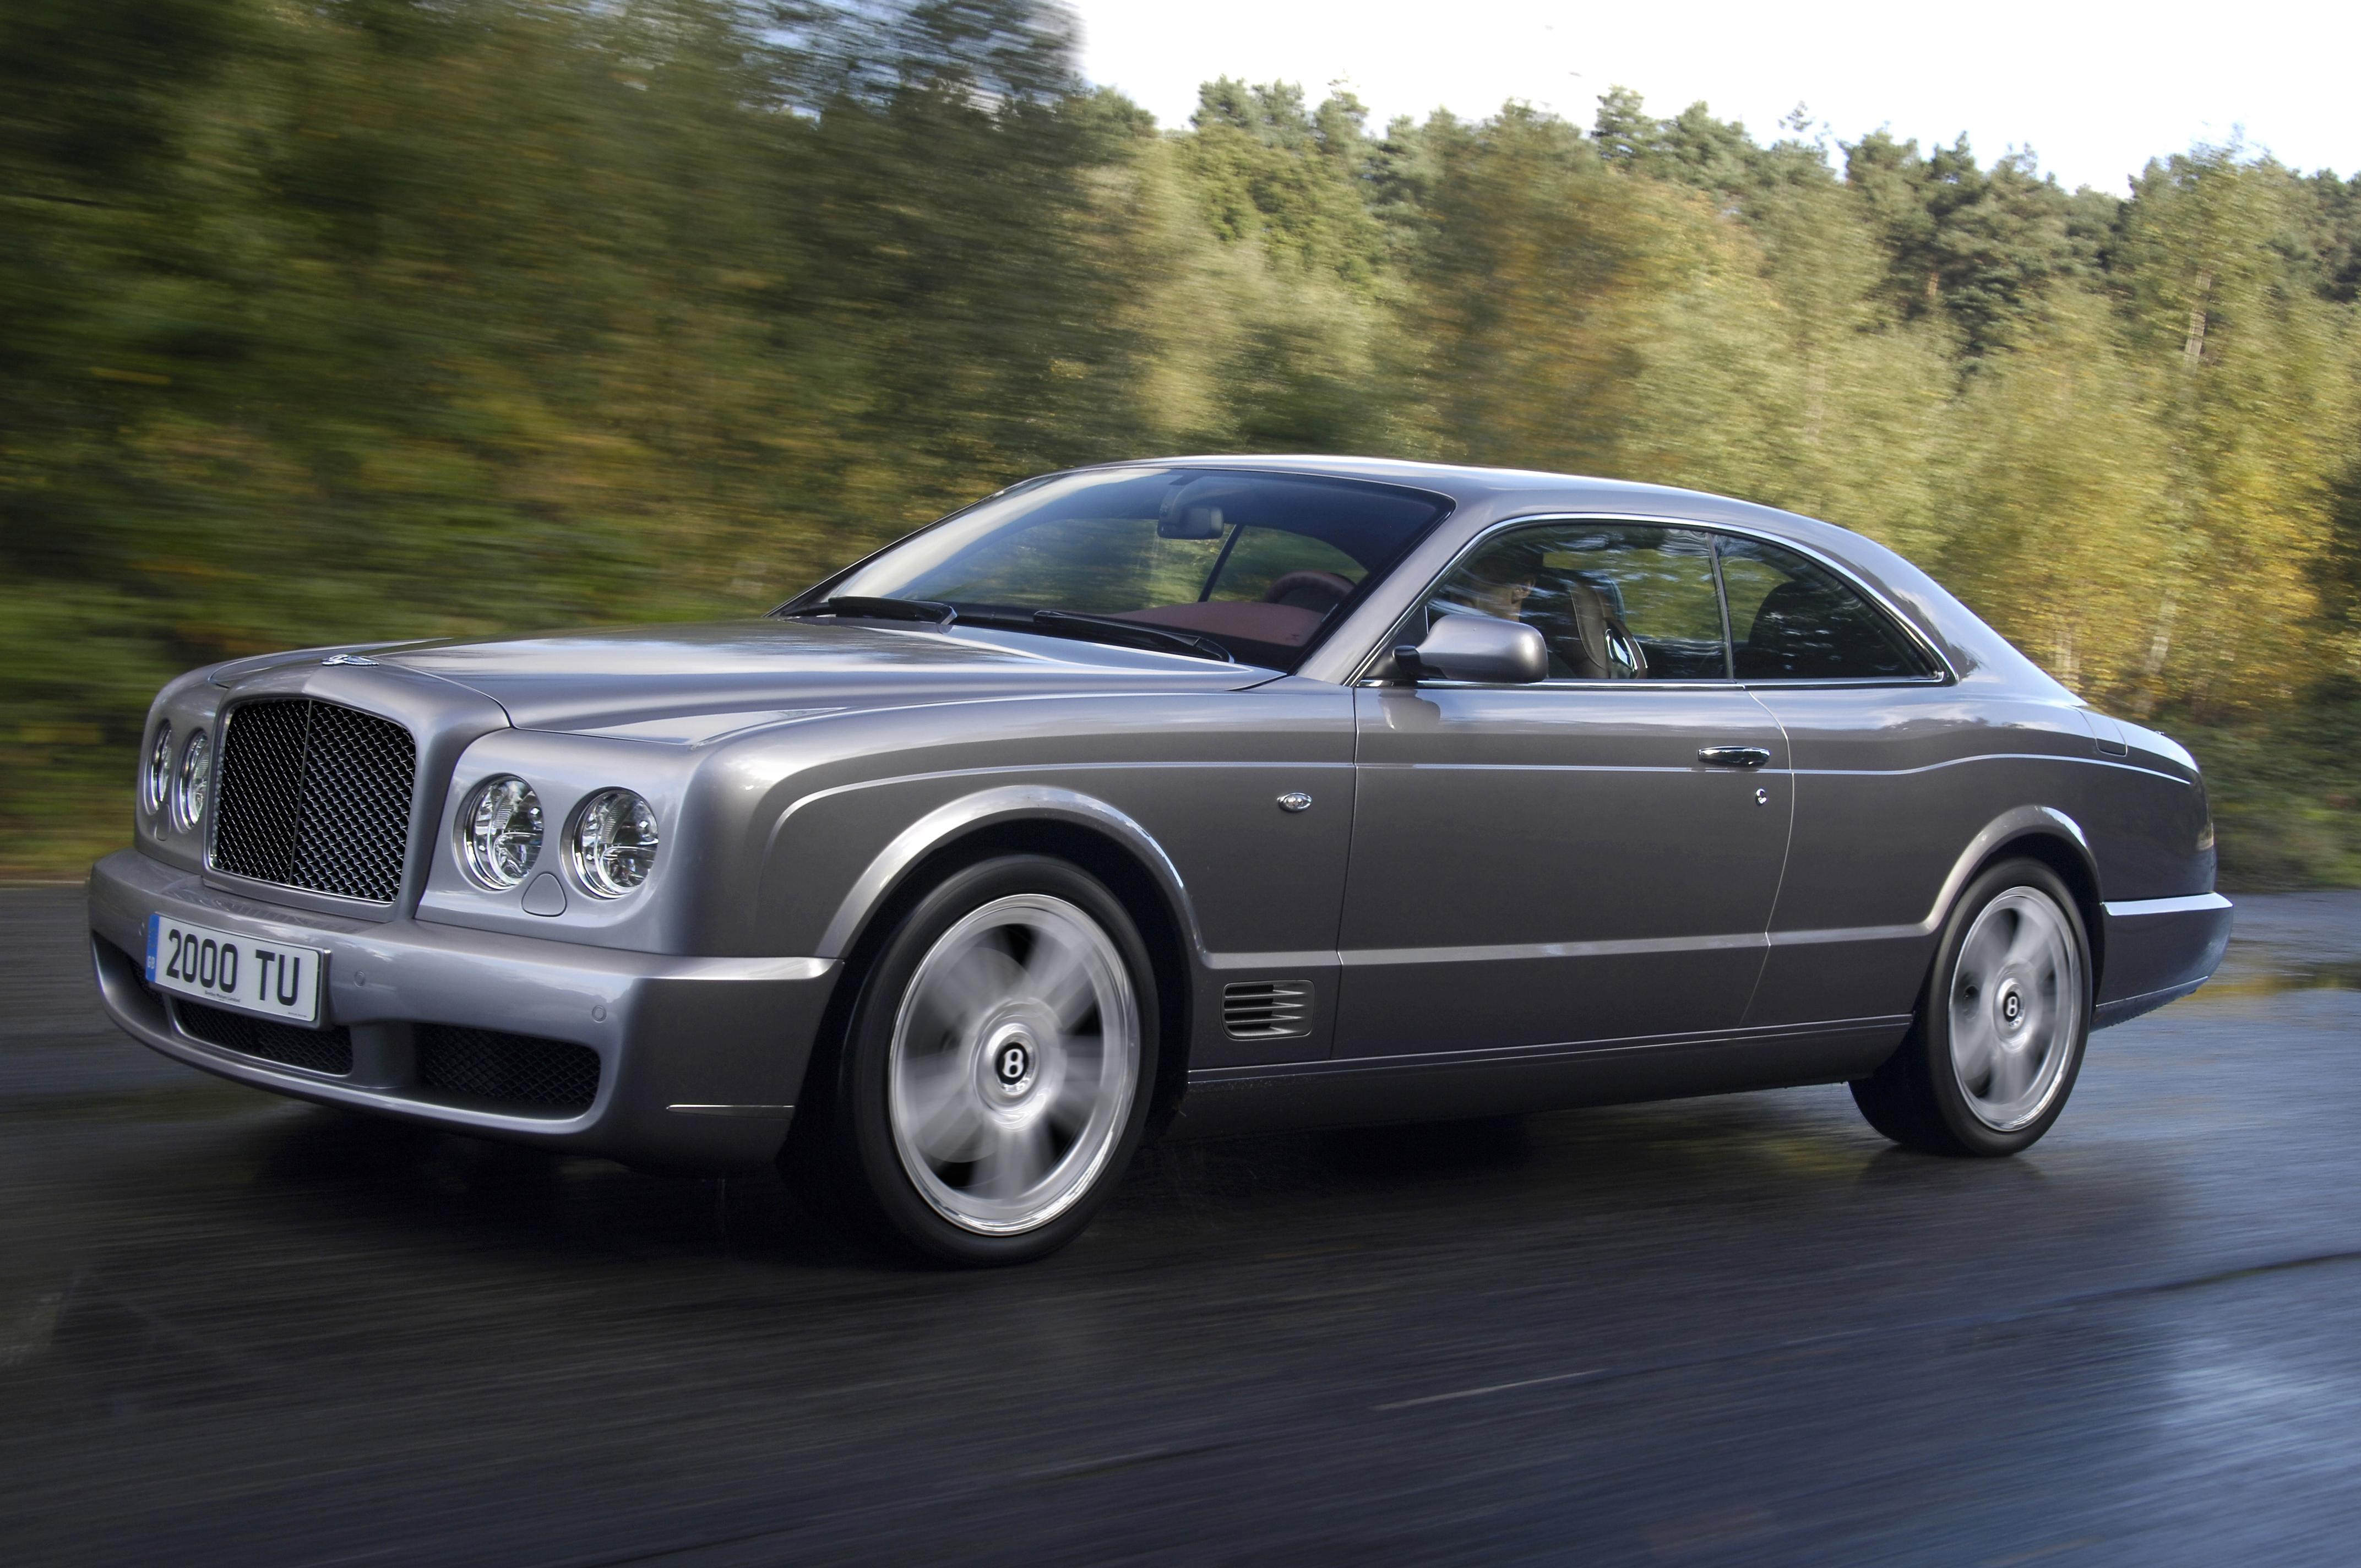 the ten r wedding ca your in type gta limos allure you bentley saloon cars wheels old sale top for can vintage rent